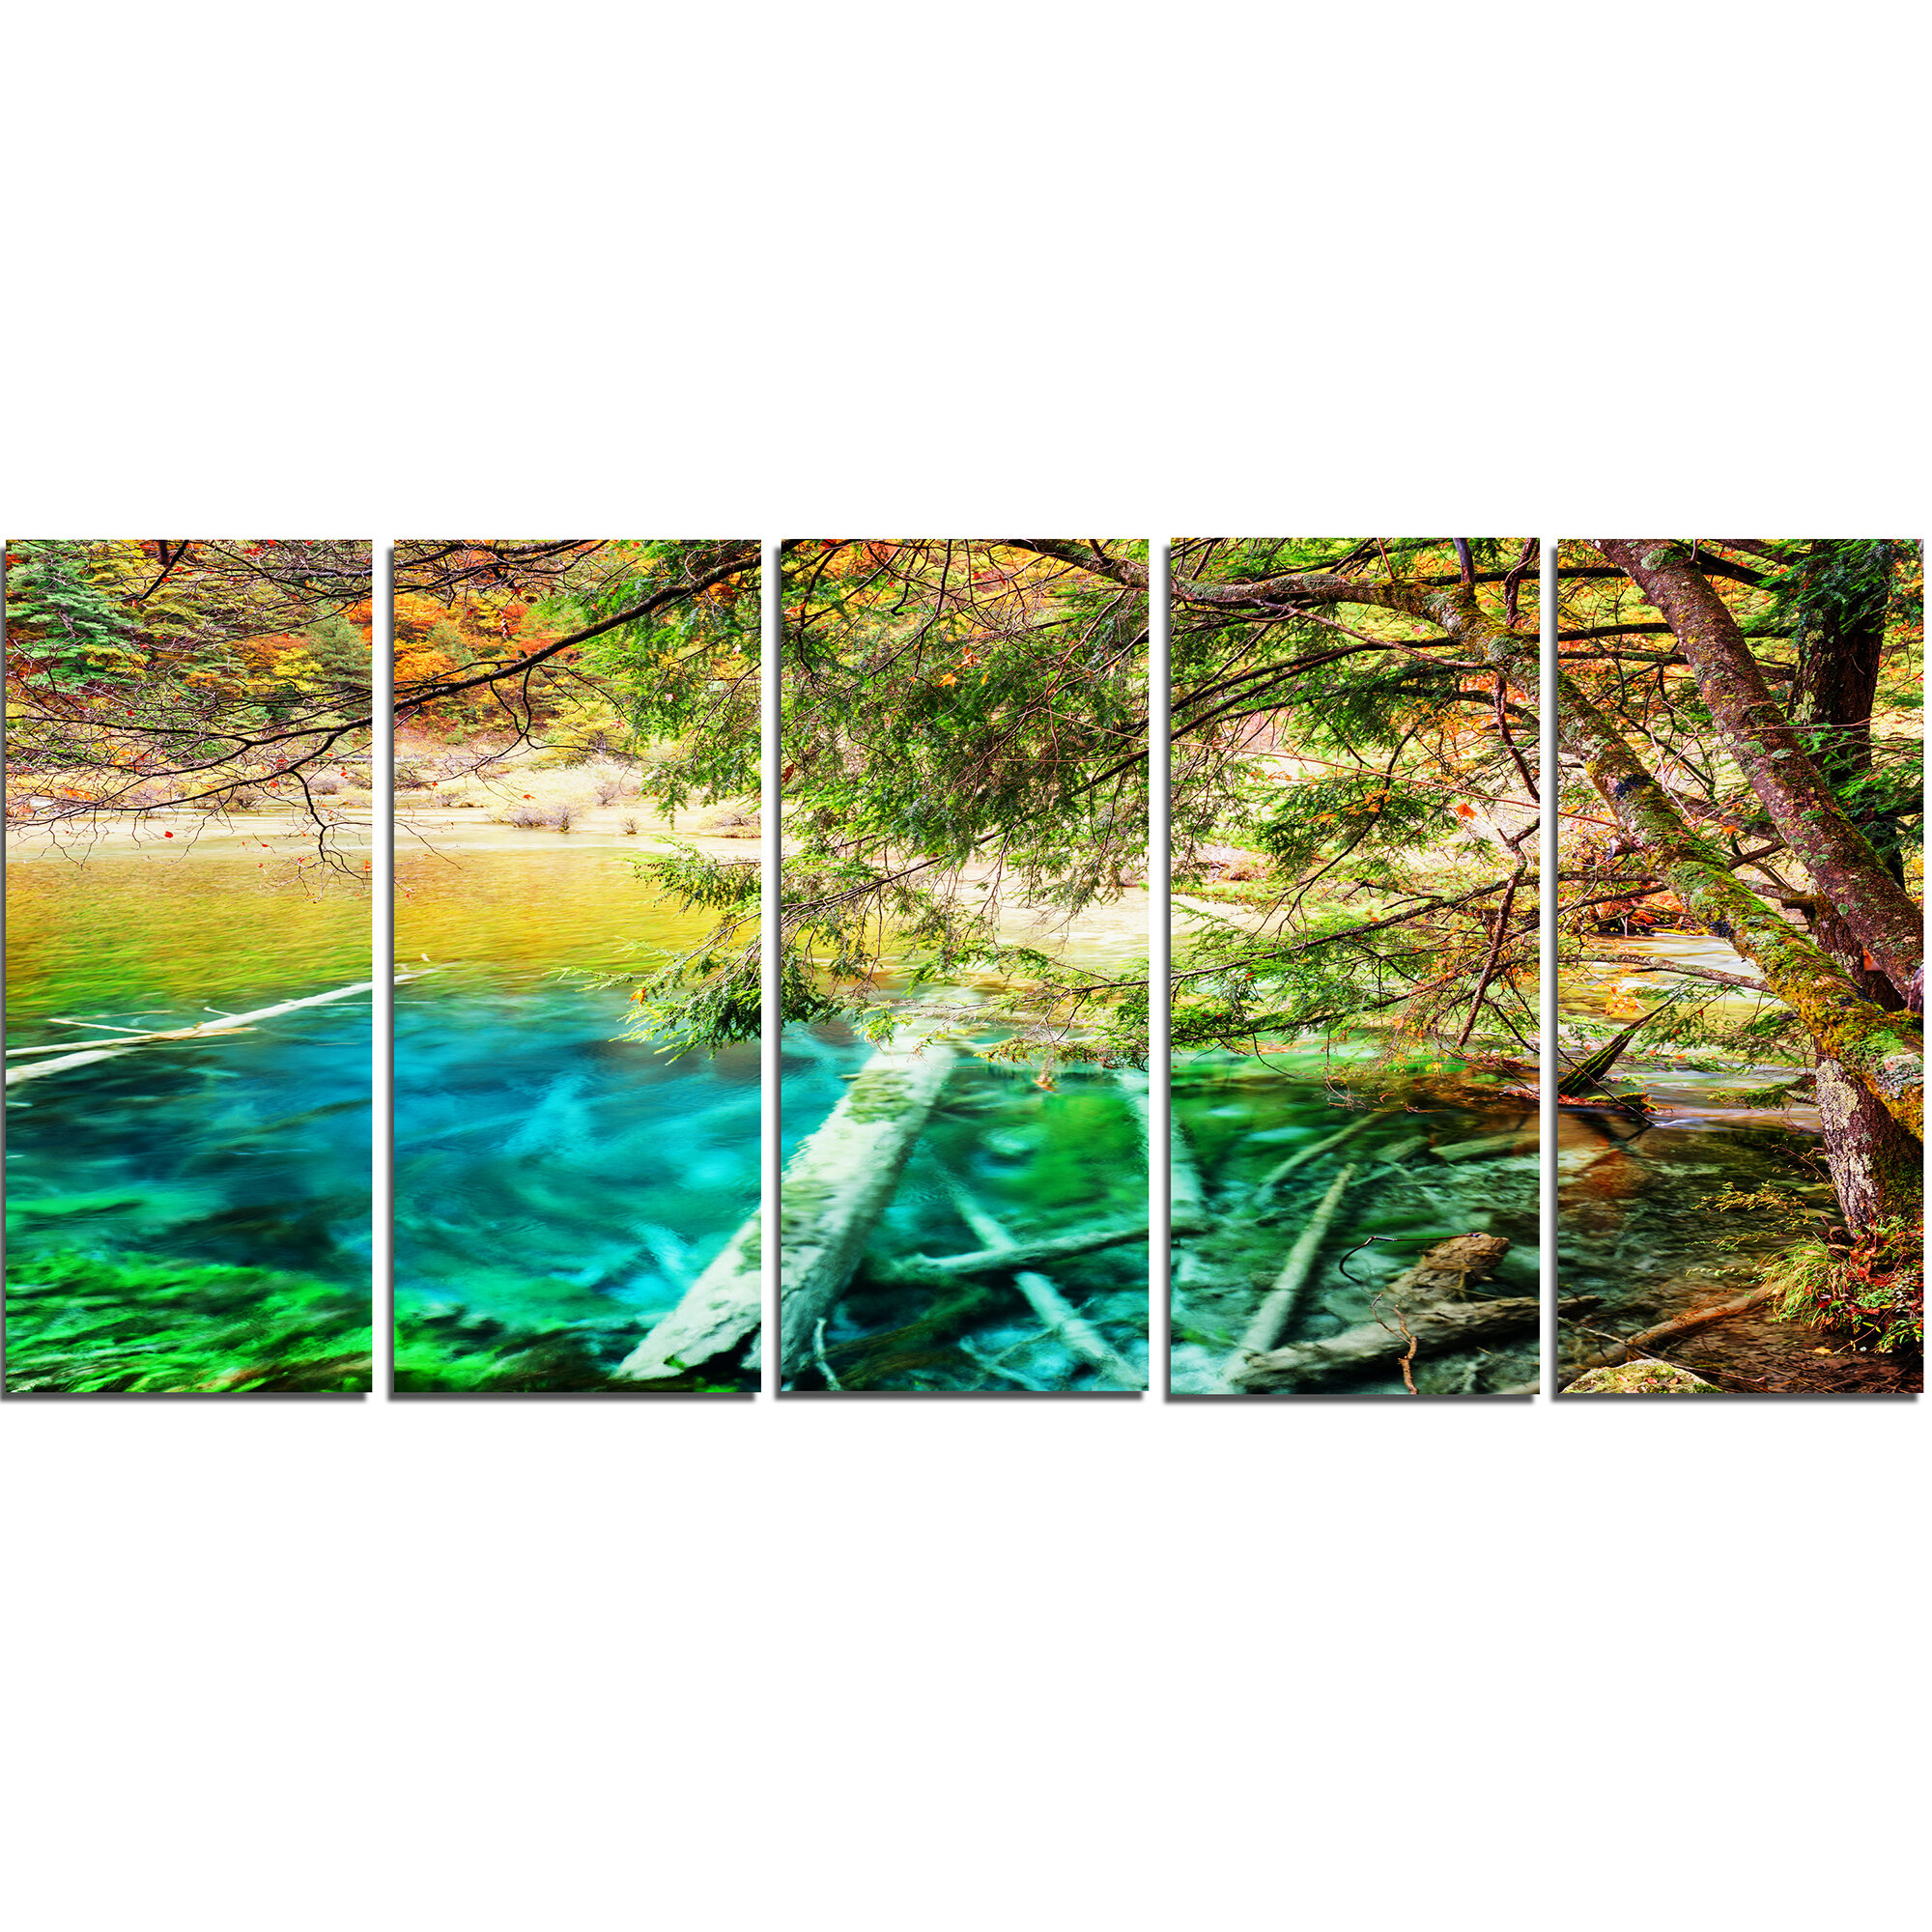 Designart Colorful Lake With Tree Trunks 5 Piece Graphic Art On Wrapped Canvas Set Wayfair